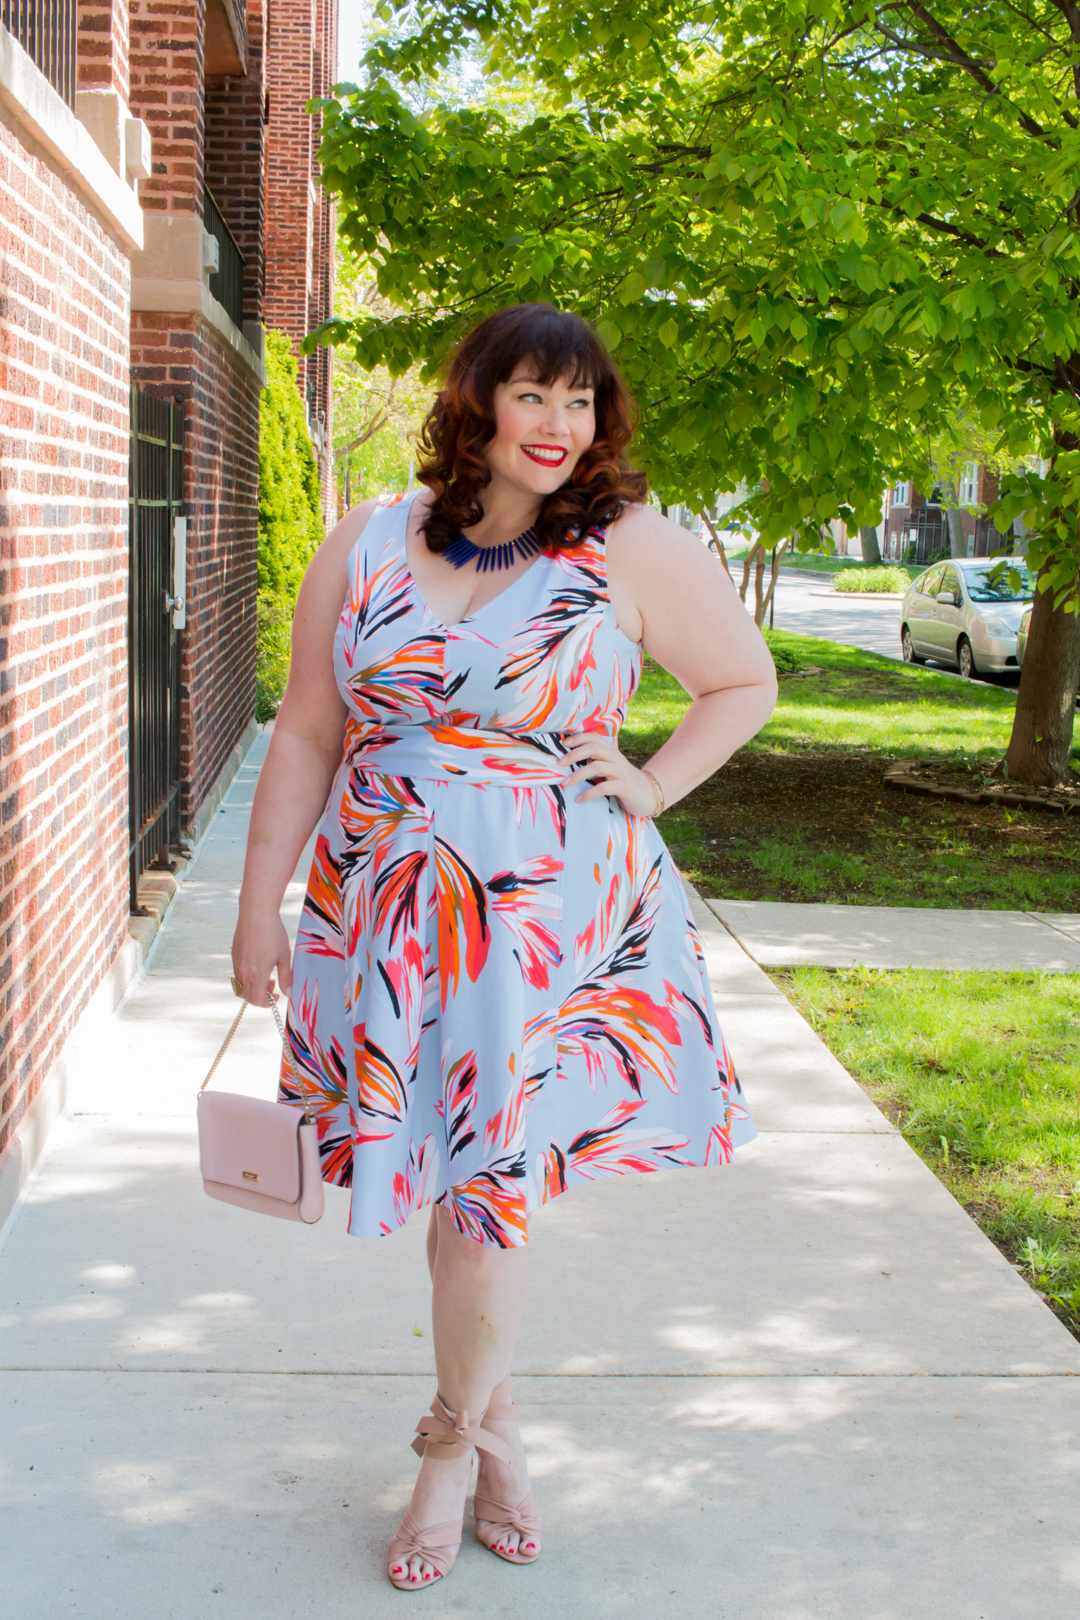 plus size dress Archives | Page 2 of 12 | Style Plus Curves - A ...